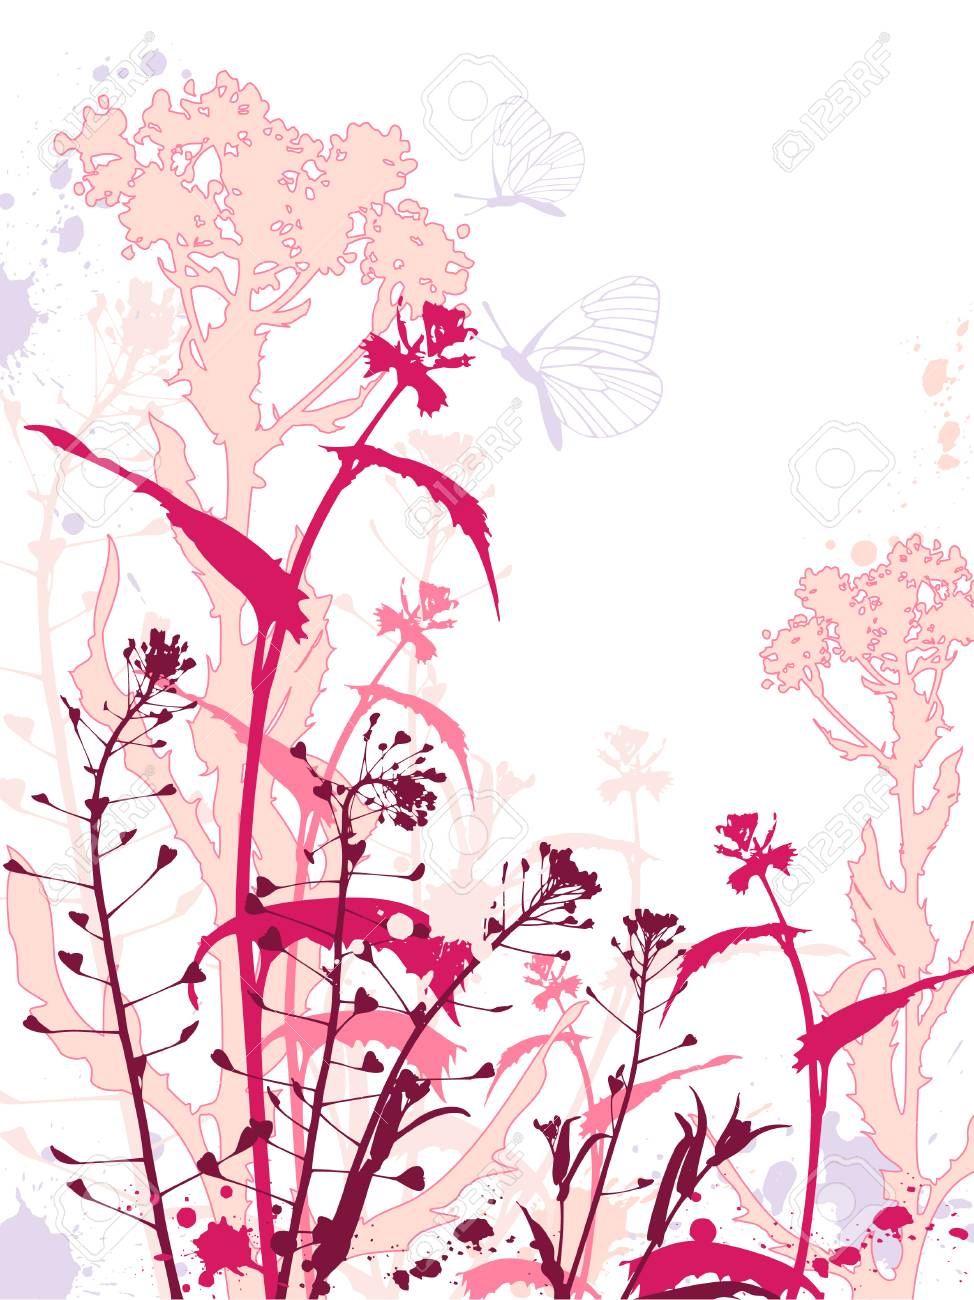 Background with red flowers,butterflies and grunge effect Stock Vector - 7042001